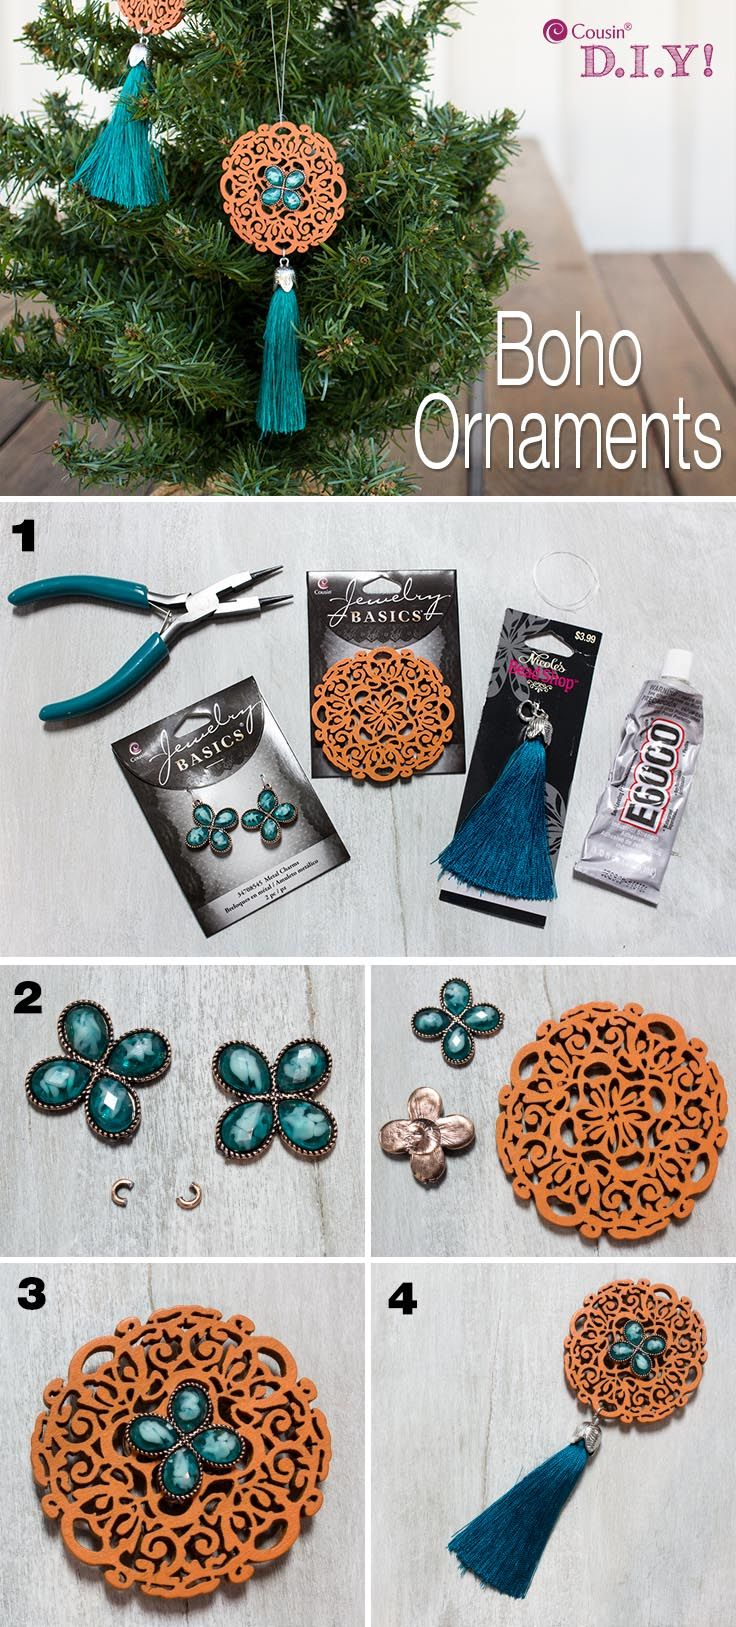 Cousin ornaments - 320 Best Images About Moore Ornaments On Pinterest Crafts Glitter Ornaments And Rustic Christmas Ornaments